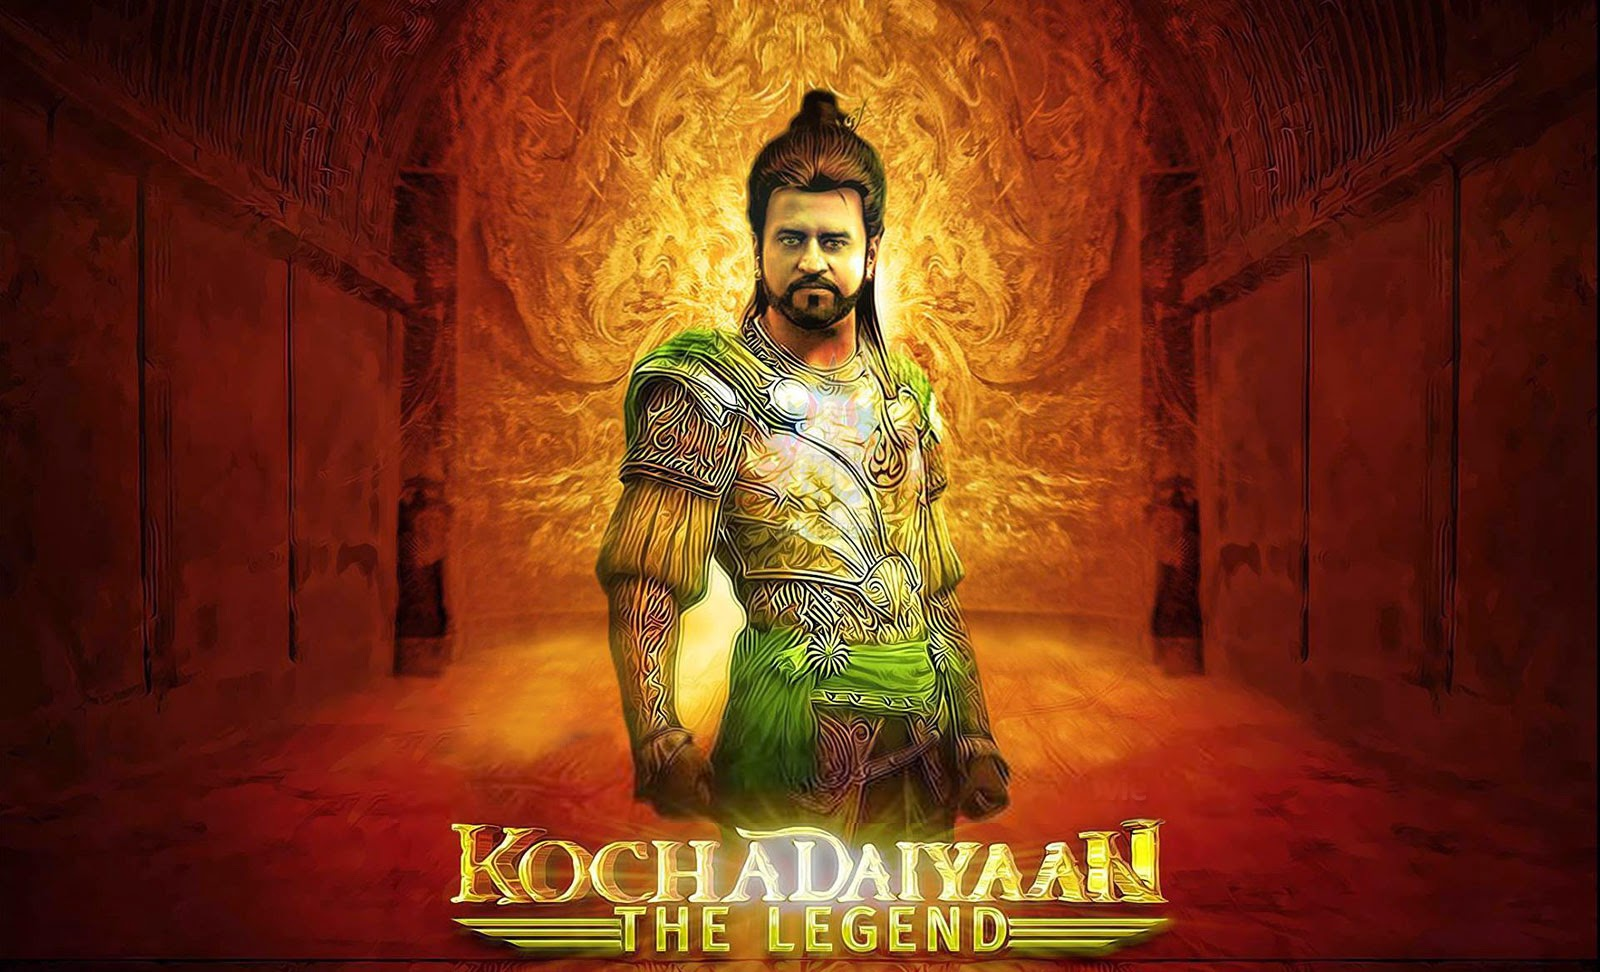 Kochadaiyan 2014 Hindi Movie Watch Online